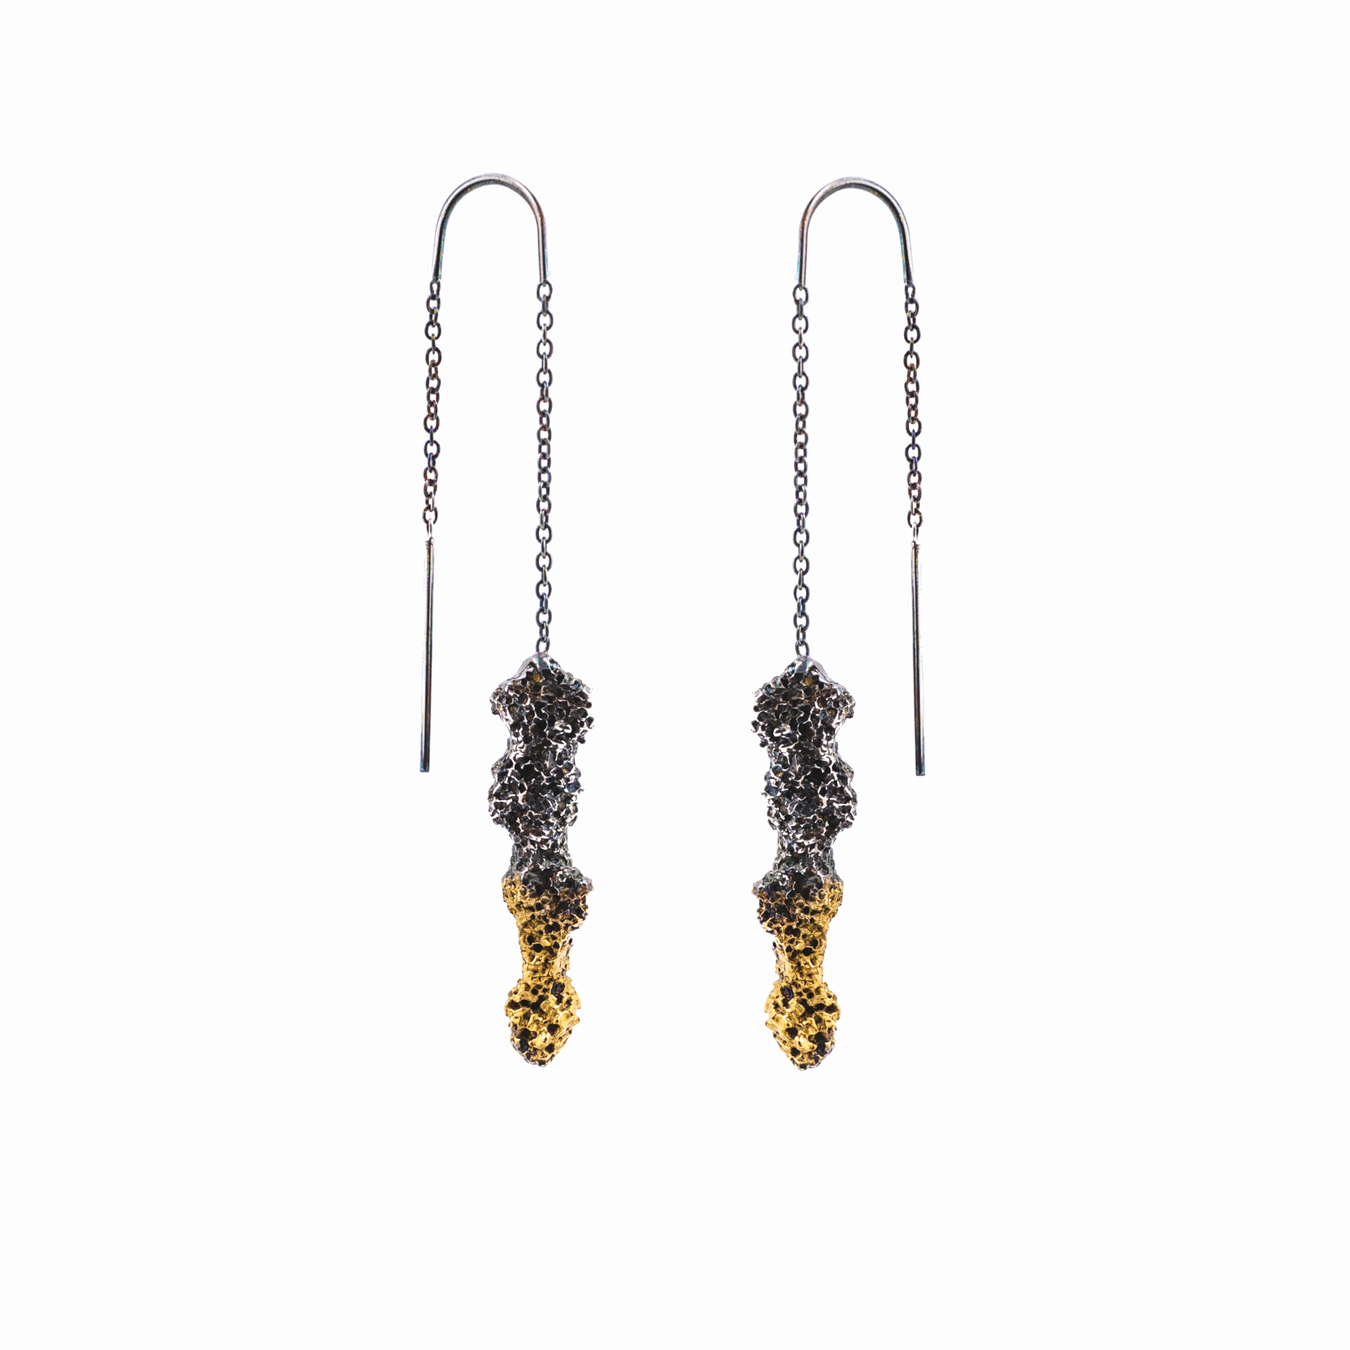 Spire Earrings: Sterling silver, gold vermeil, patina.